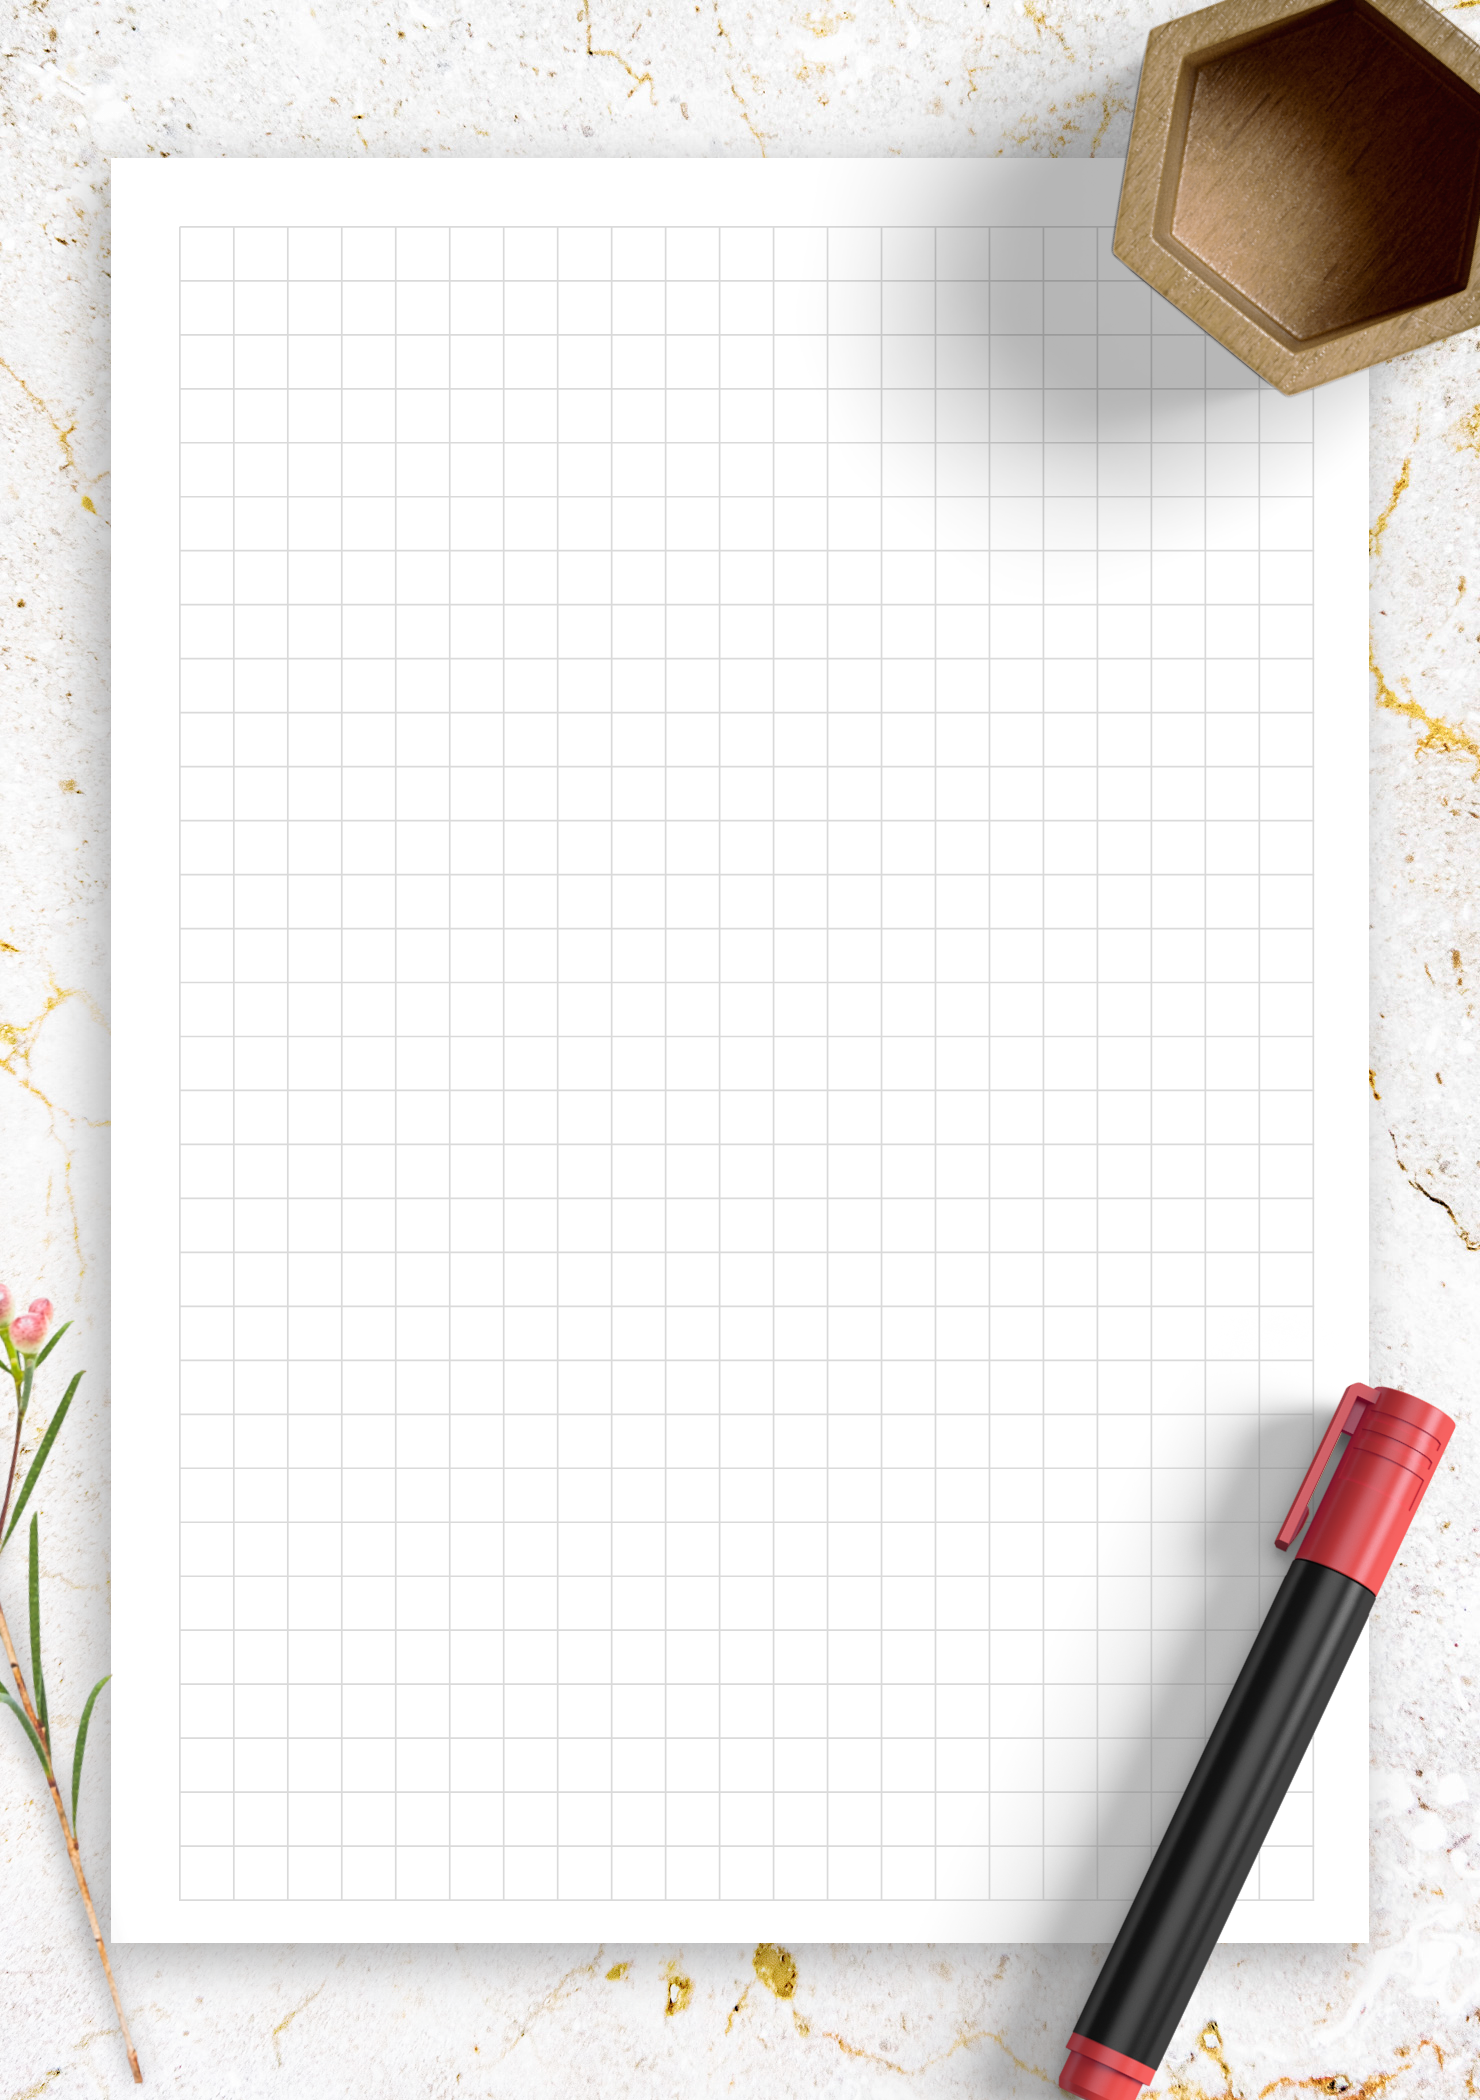 It's just a photo of Lucrative Printable 1 Inch Graph Paper